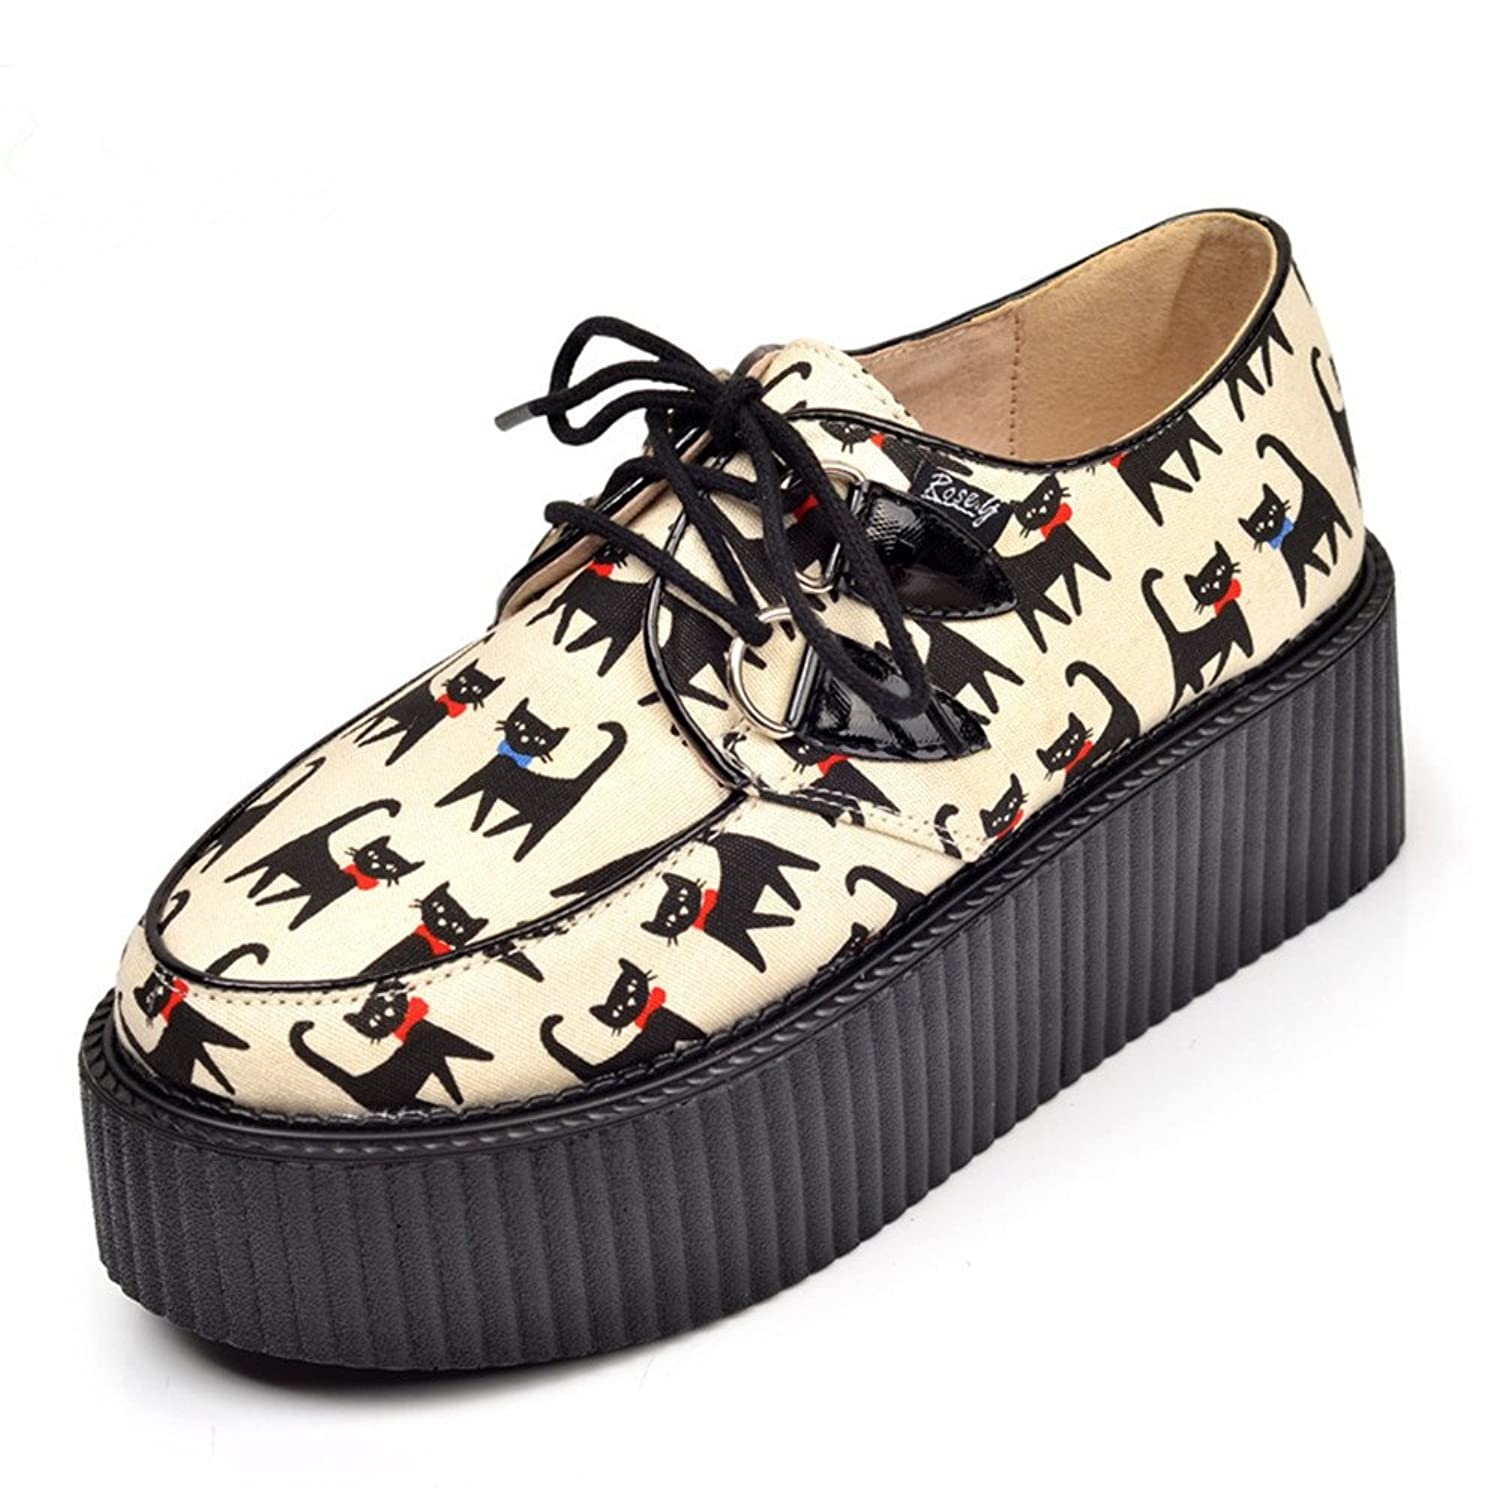 Punk Roseg Creepers Lacets Casual Forme Gothique Femmes Plate g6wOX